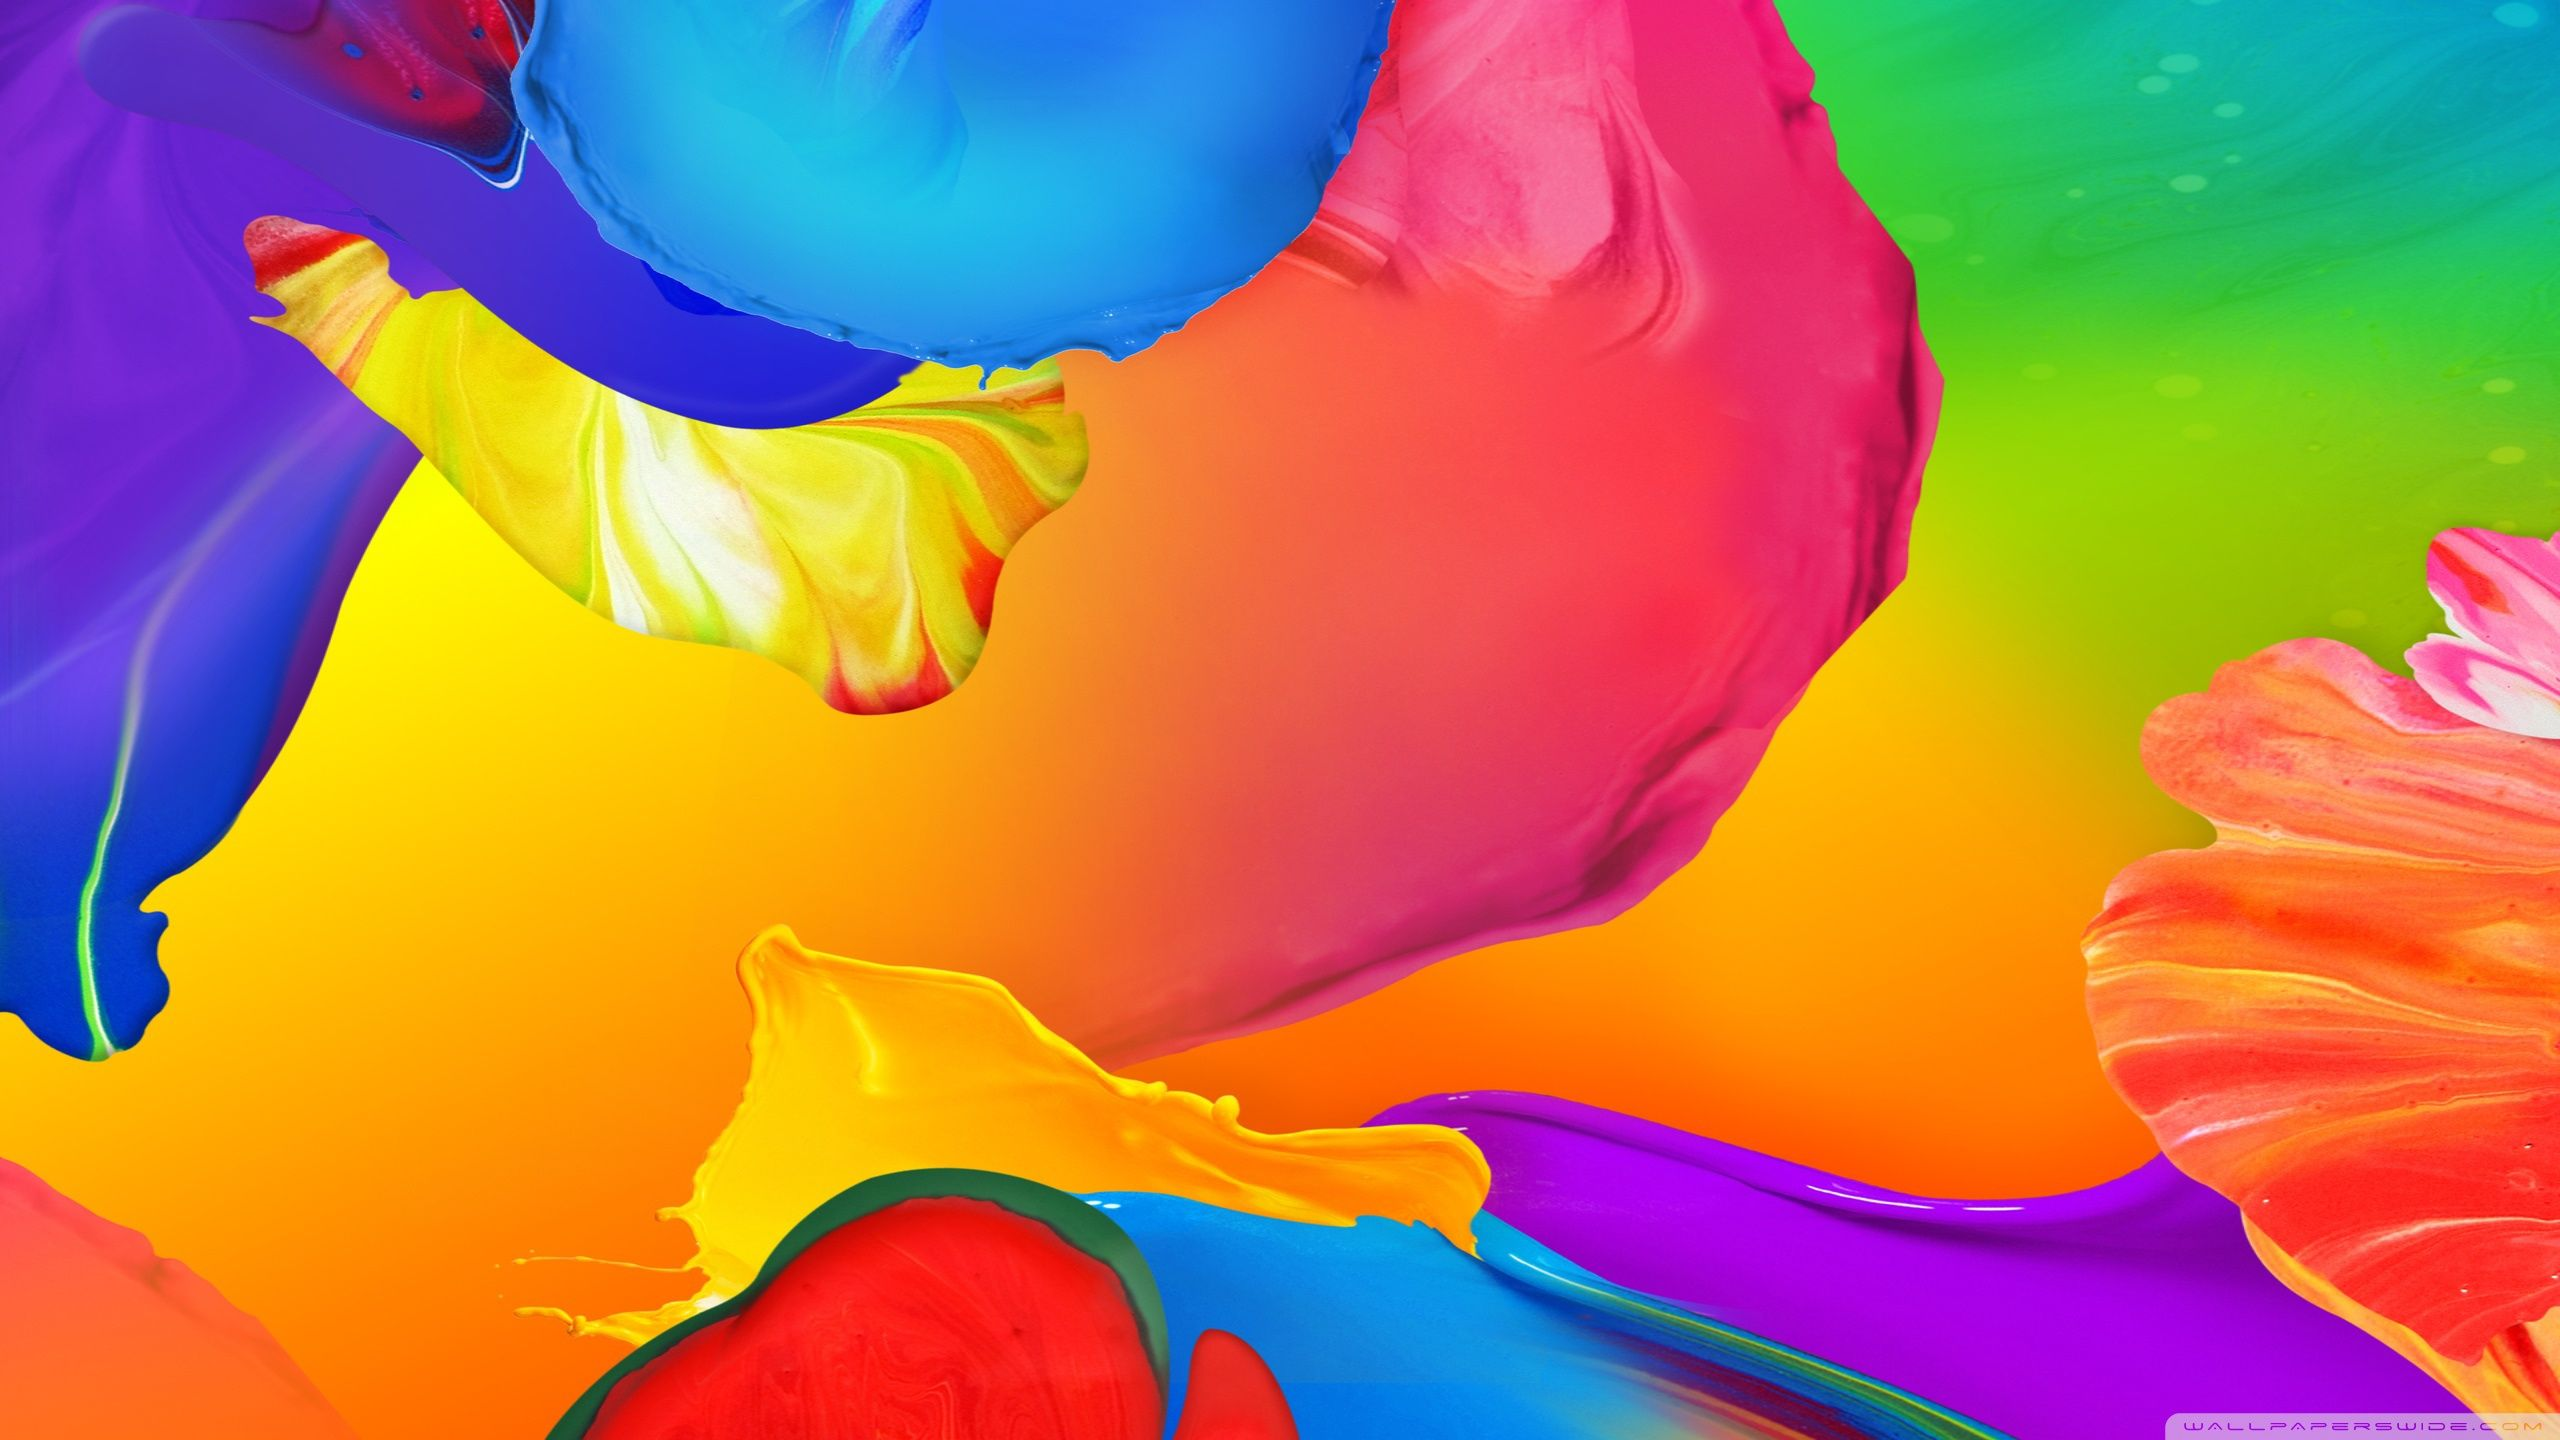 Colorful Abstract Art Wallpapers Top Free Colorful